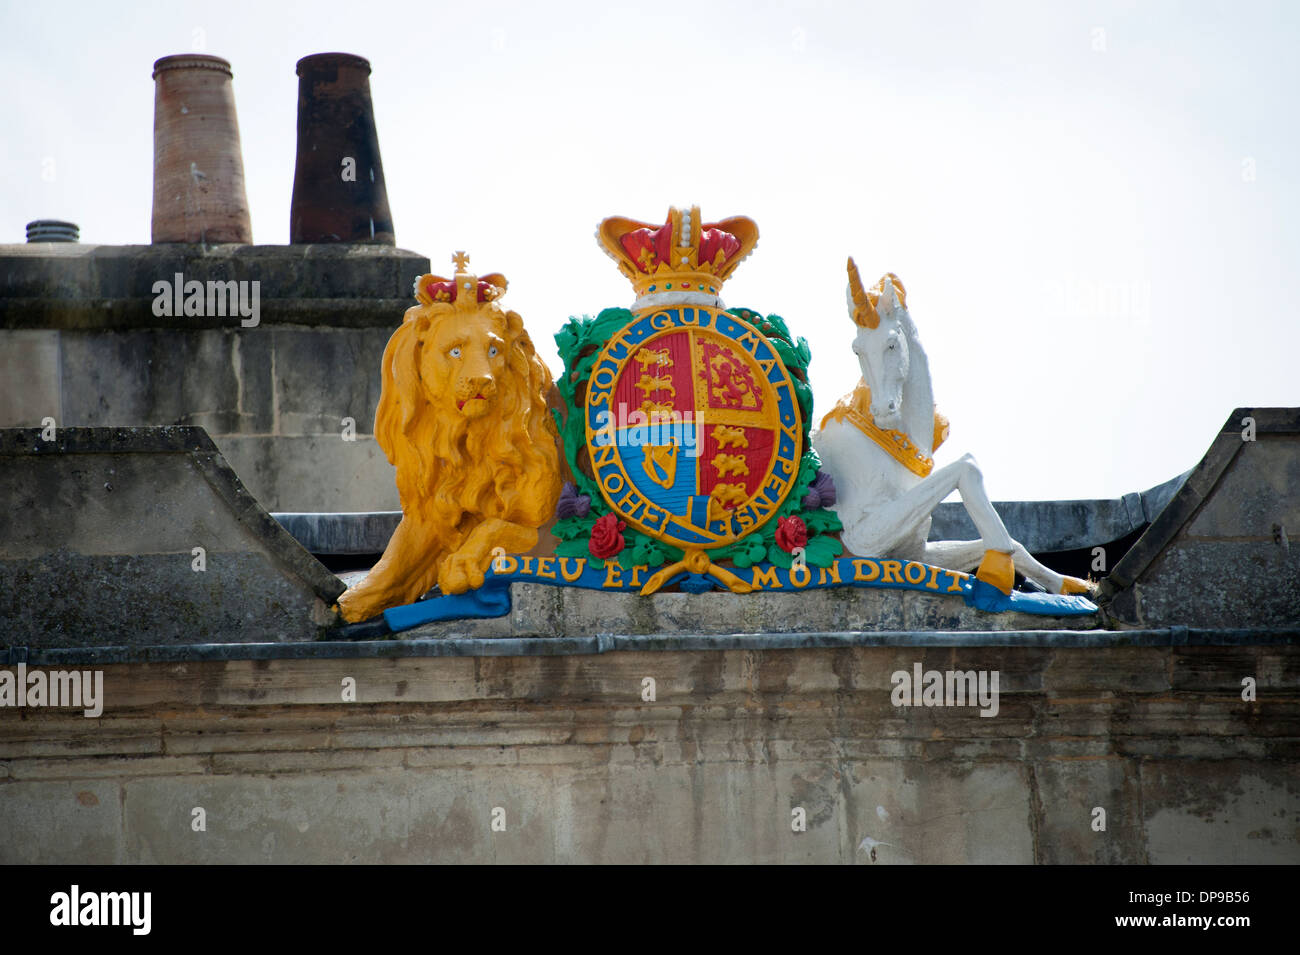 Royal Crest Lion and Unicorn Bath Somerset UK - Stock Image